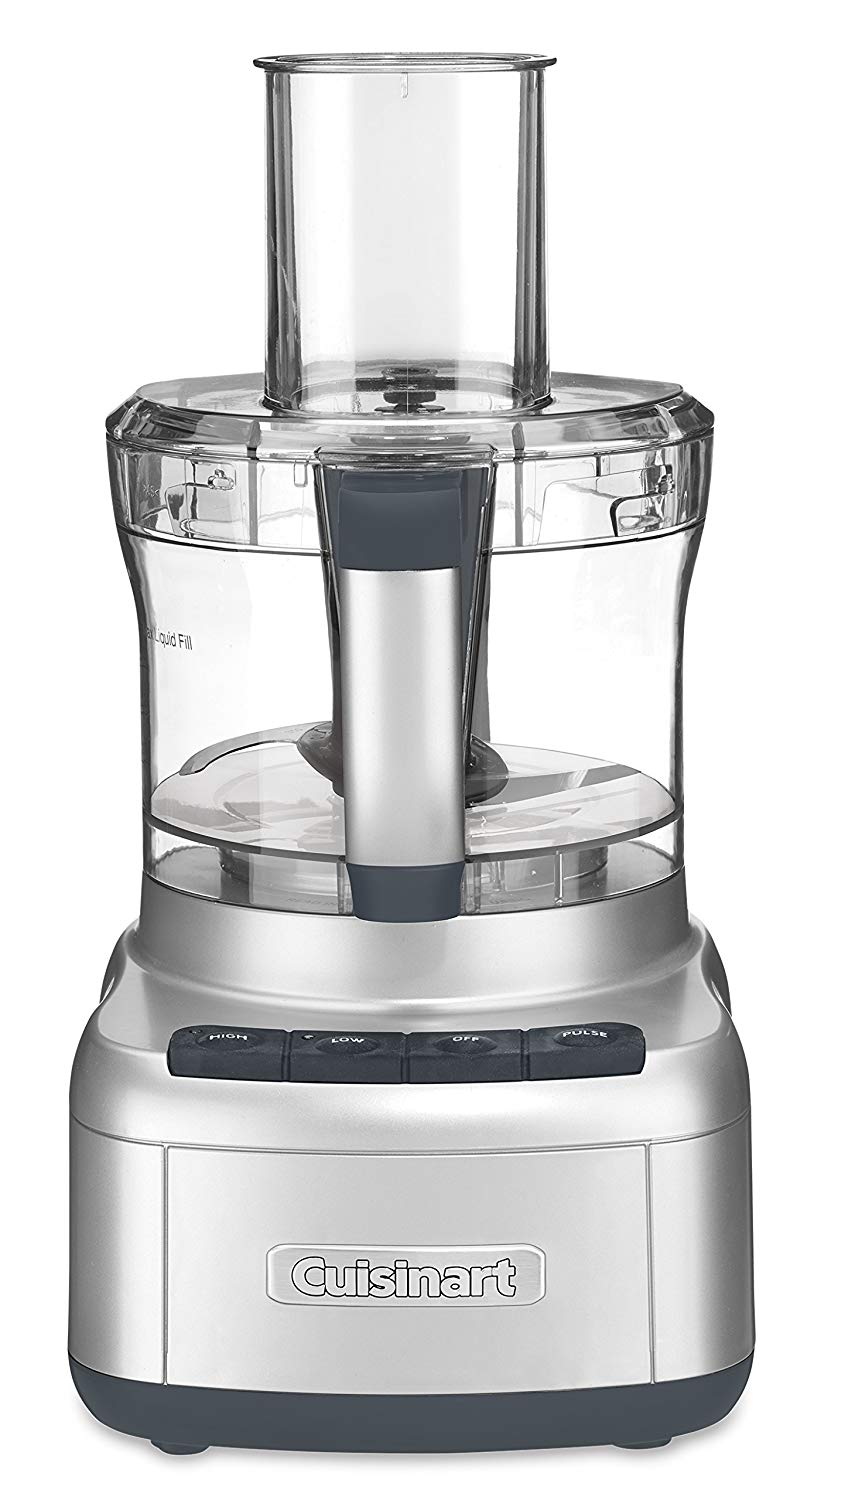 iv)	Cuisinart FP-8SV Elemental 8 Cup Food Processor